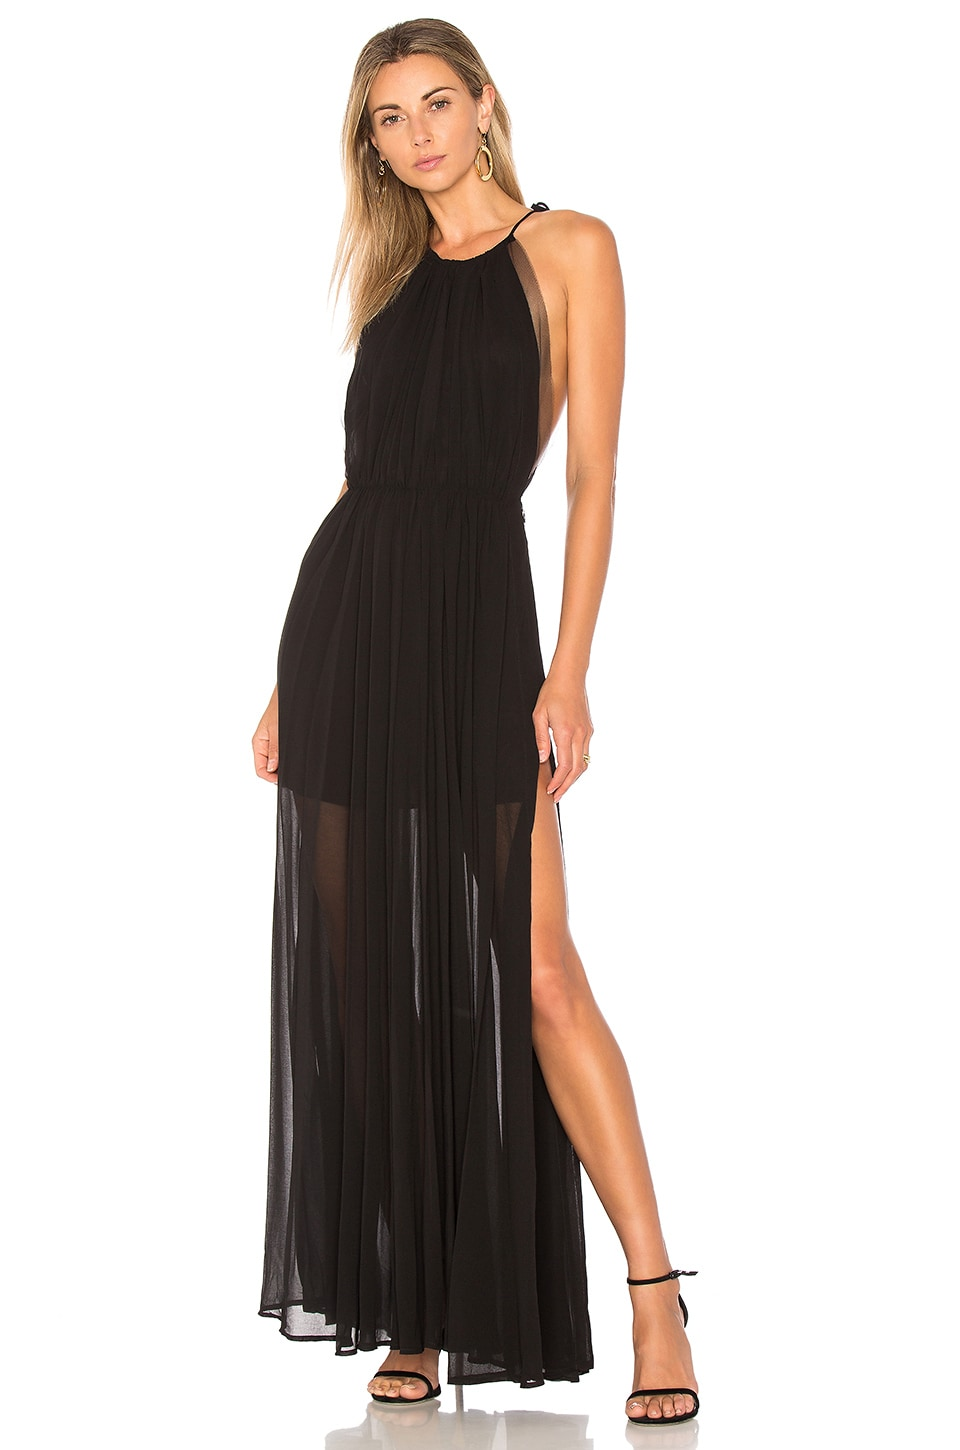 Lovers + Friends x REVOLVE Ezra Gown in Black